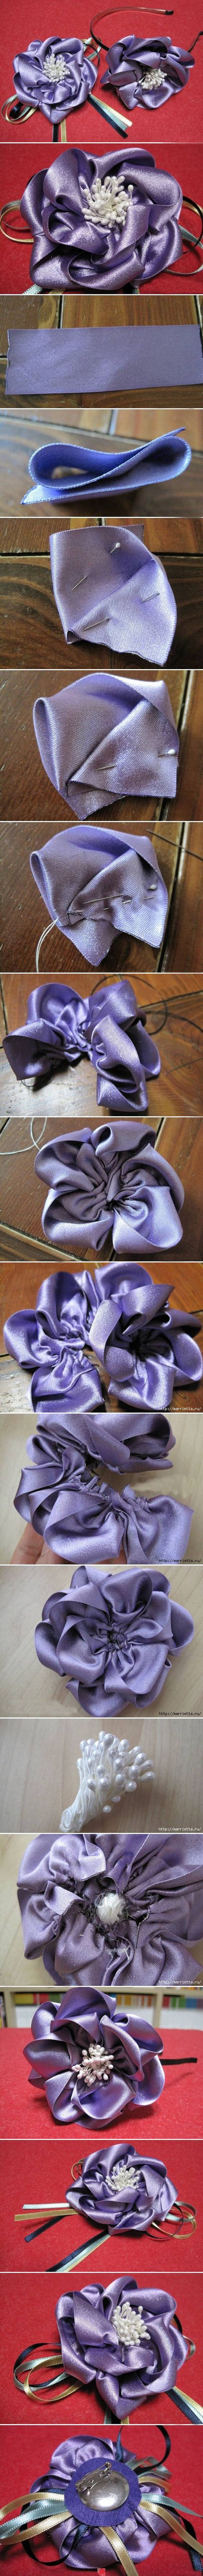 Ribbon flowers: